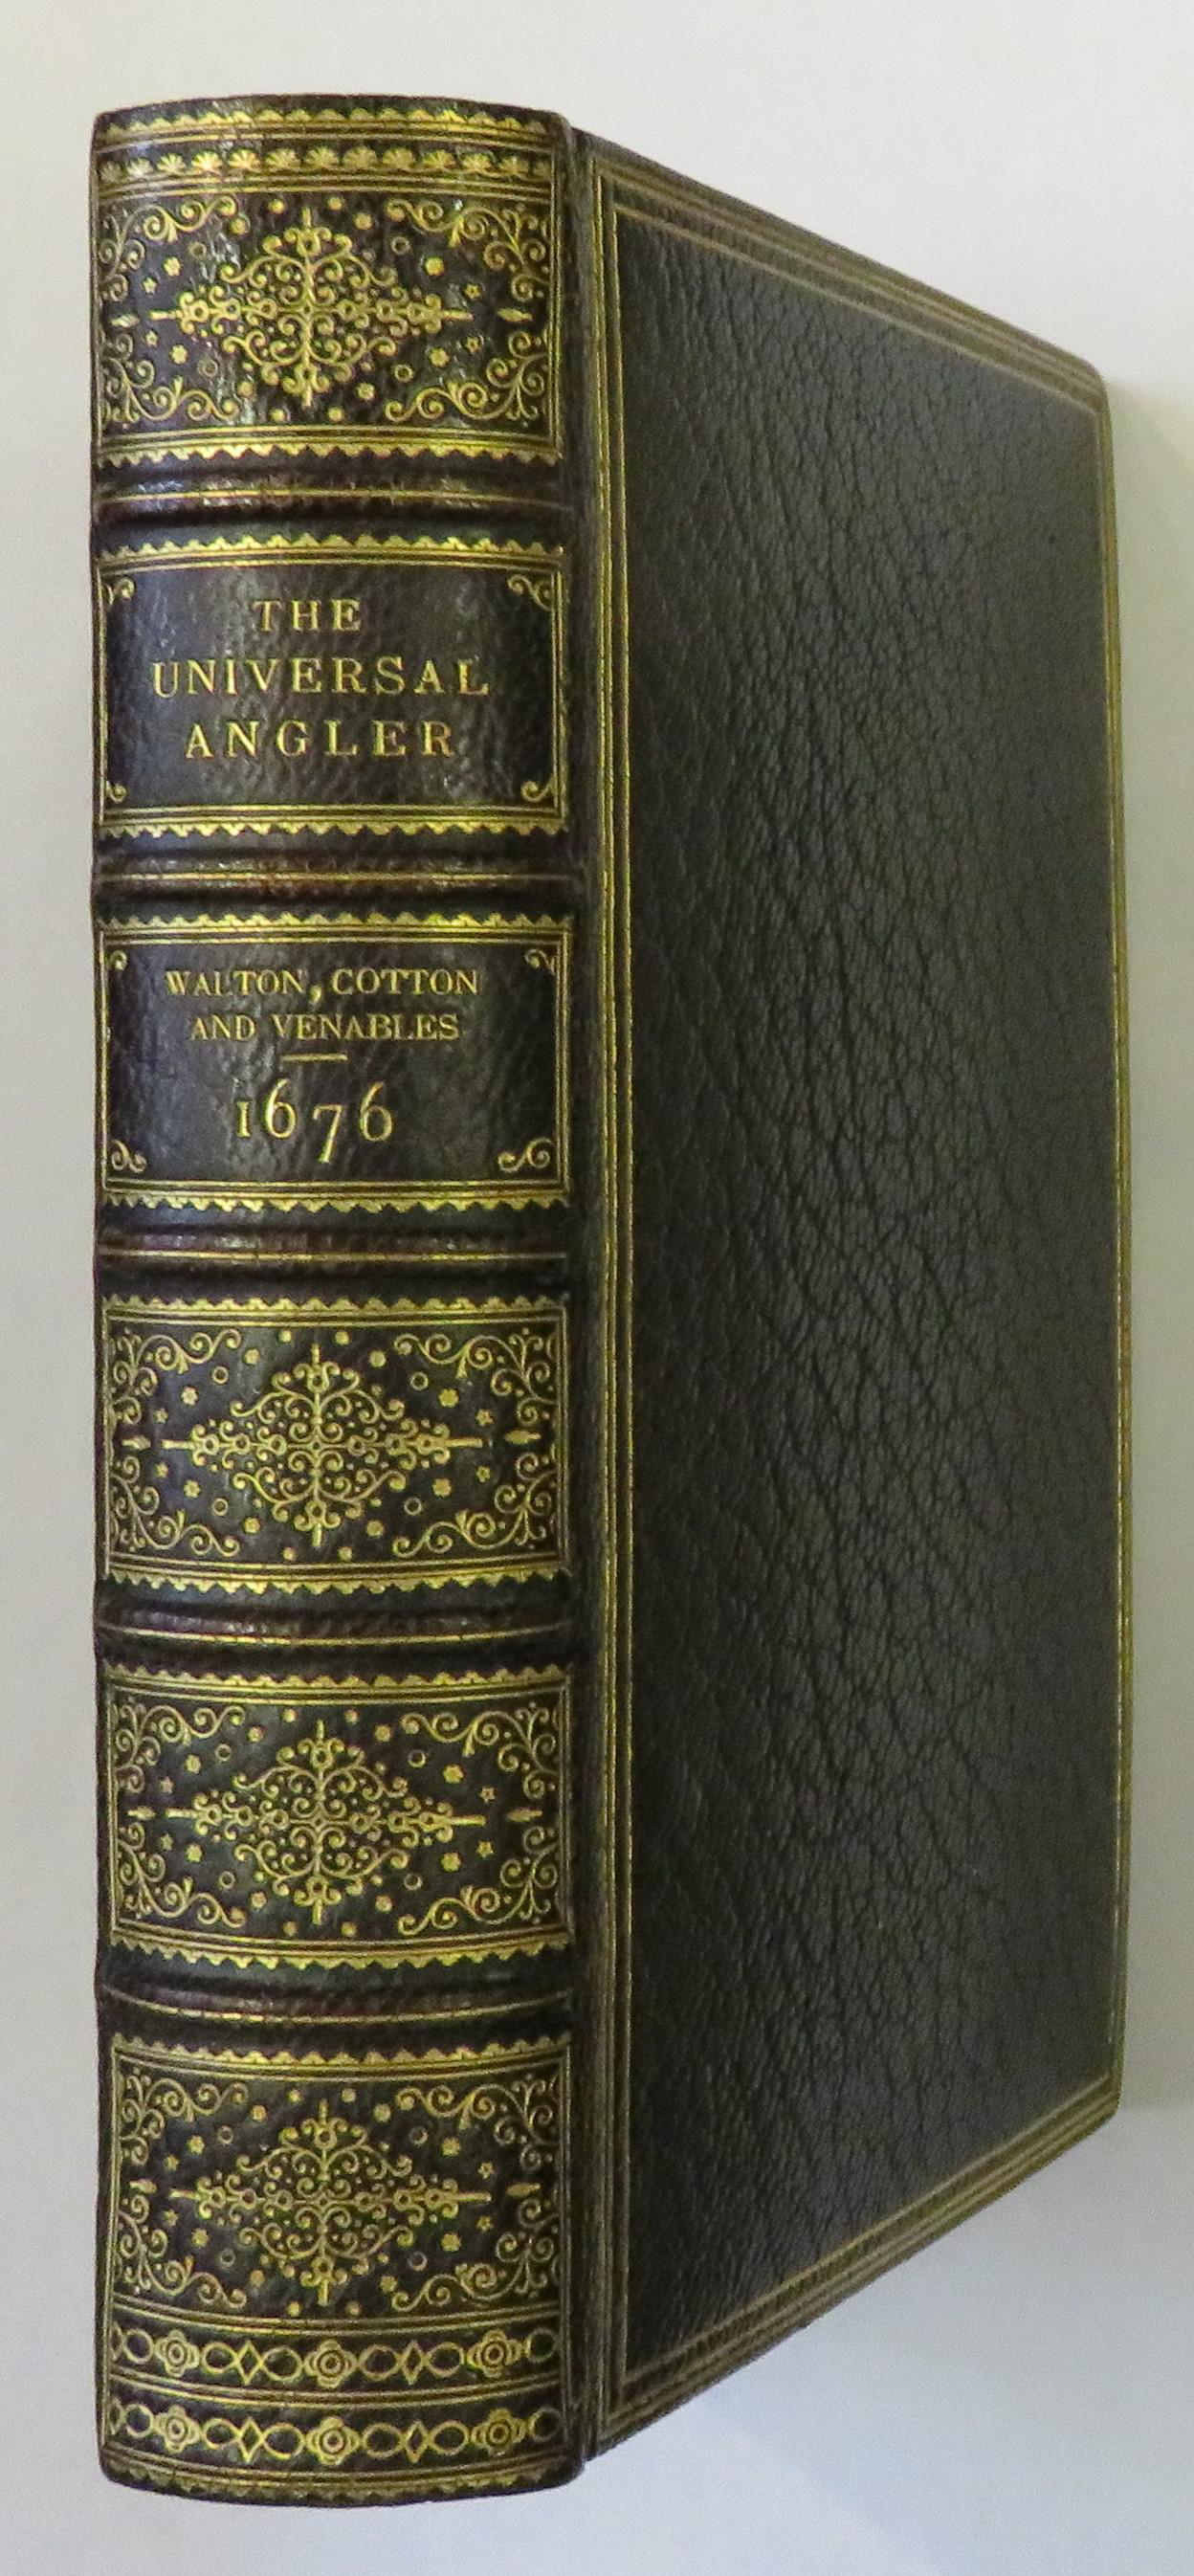 The Universal Angler, Made so by Three Books of Fishing